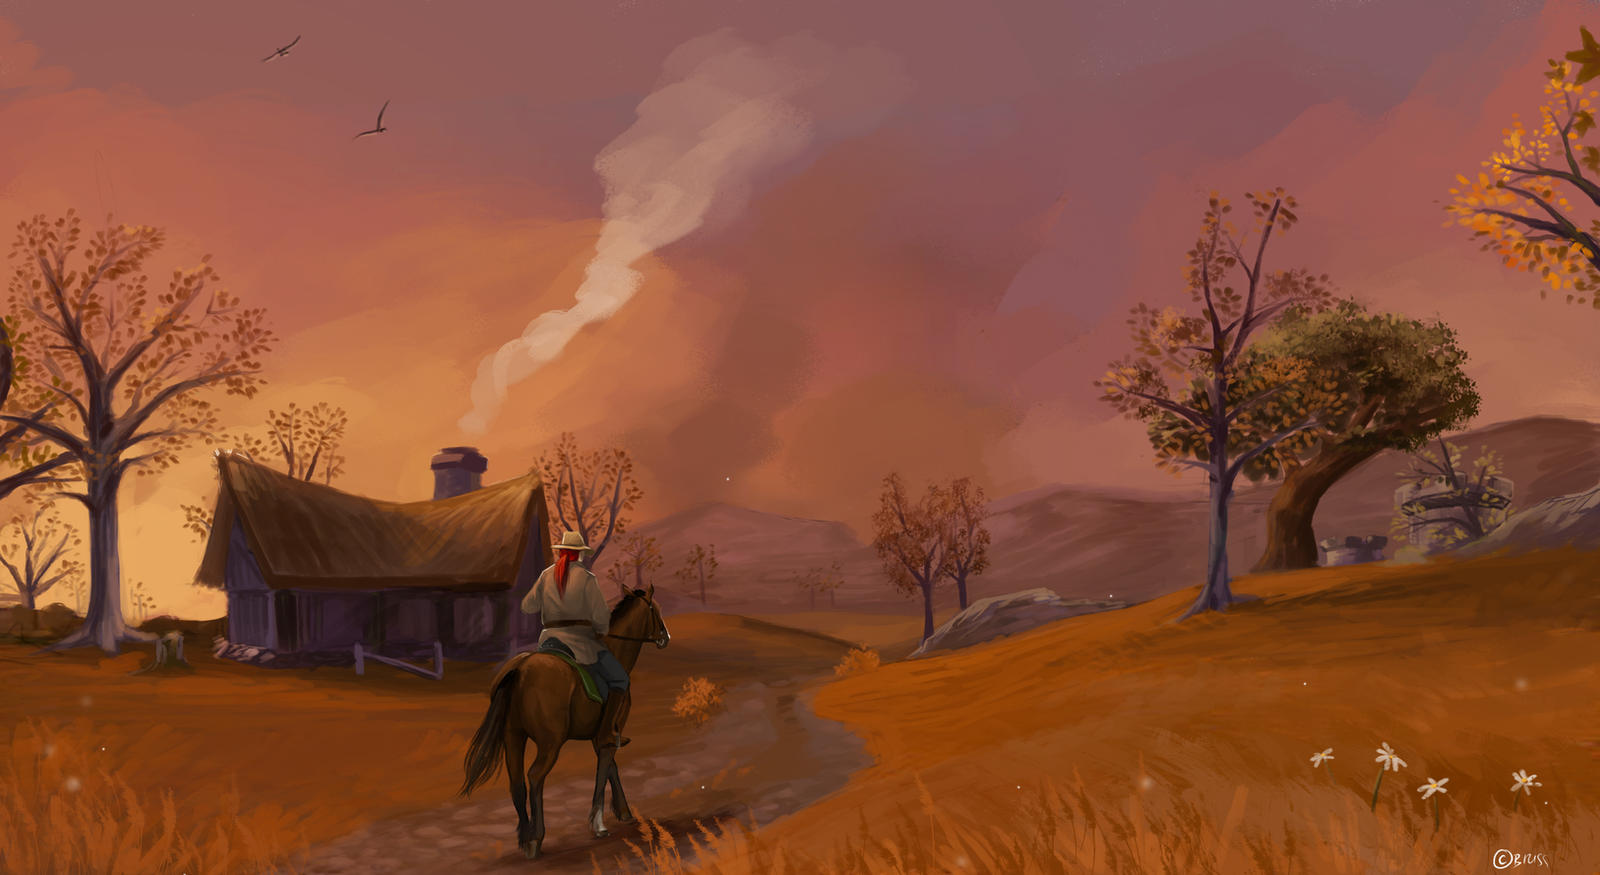 Home in westfall by brissinge on deviantart for West fall